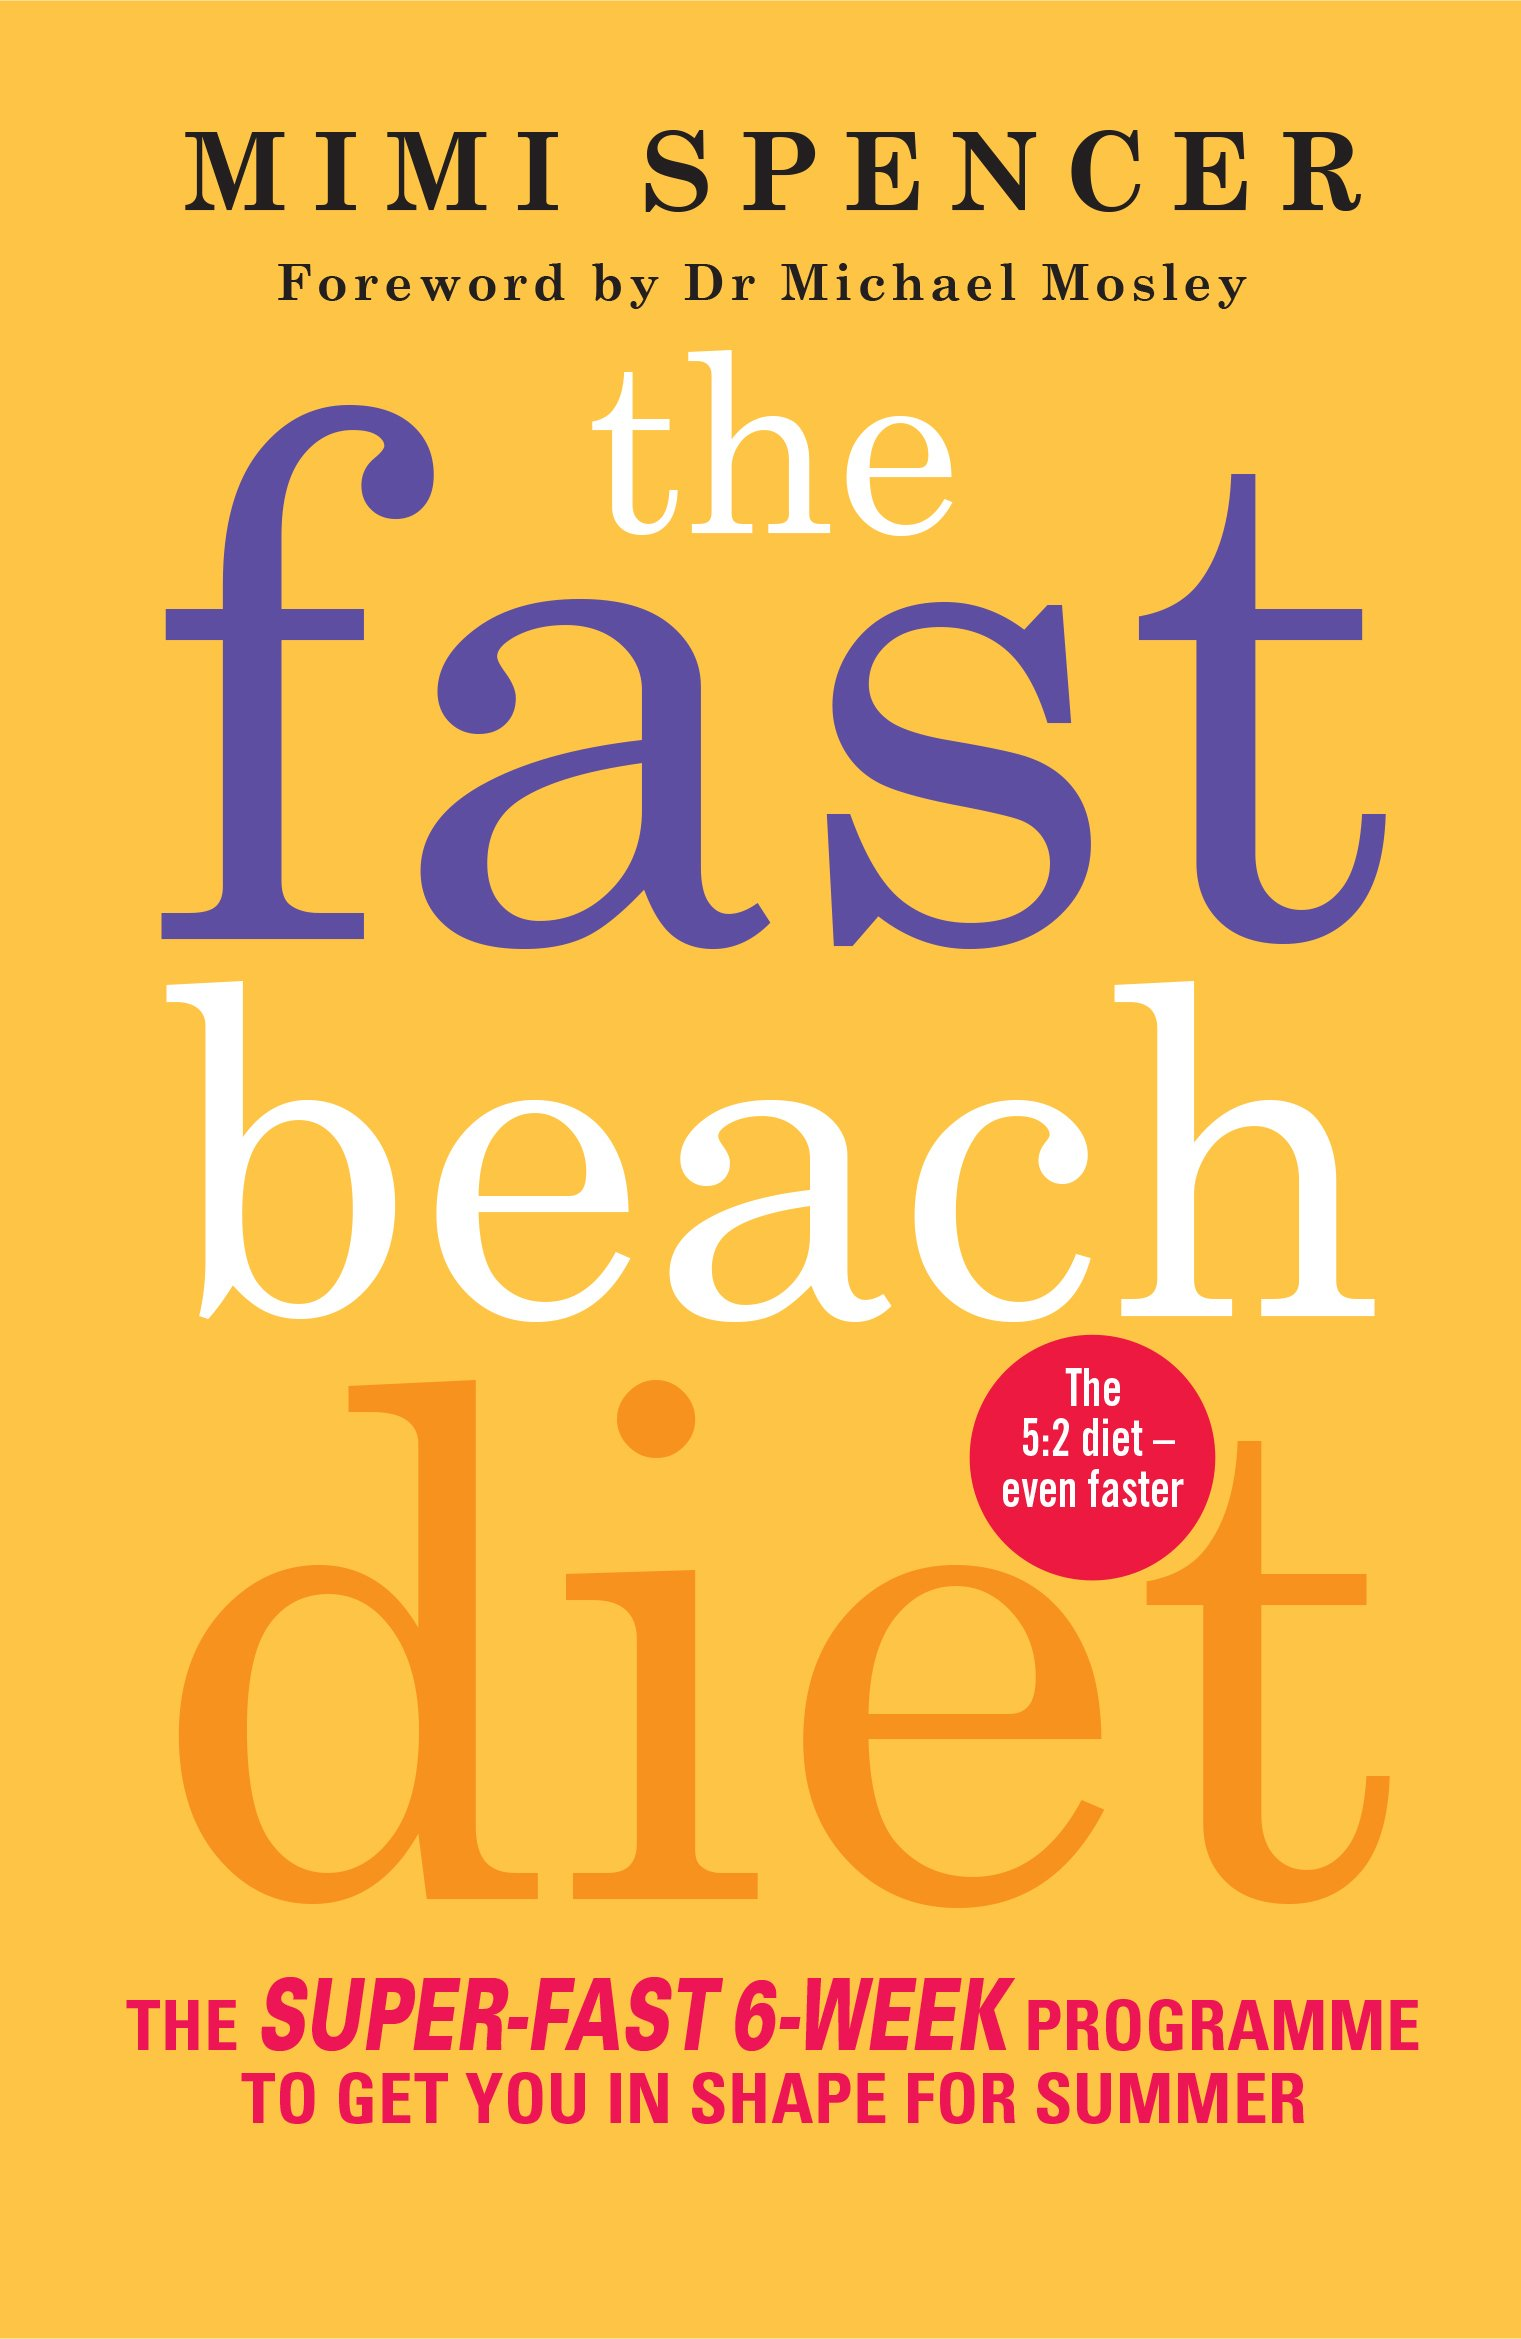 Fast Beach Diet: The Super-Fast 6-Week Programme to Get You in Shape for  Summer: Amazon.co.uk: Mimi Spencer: 9781780722245: Books